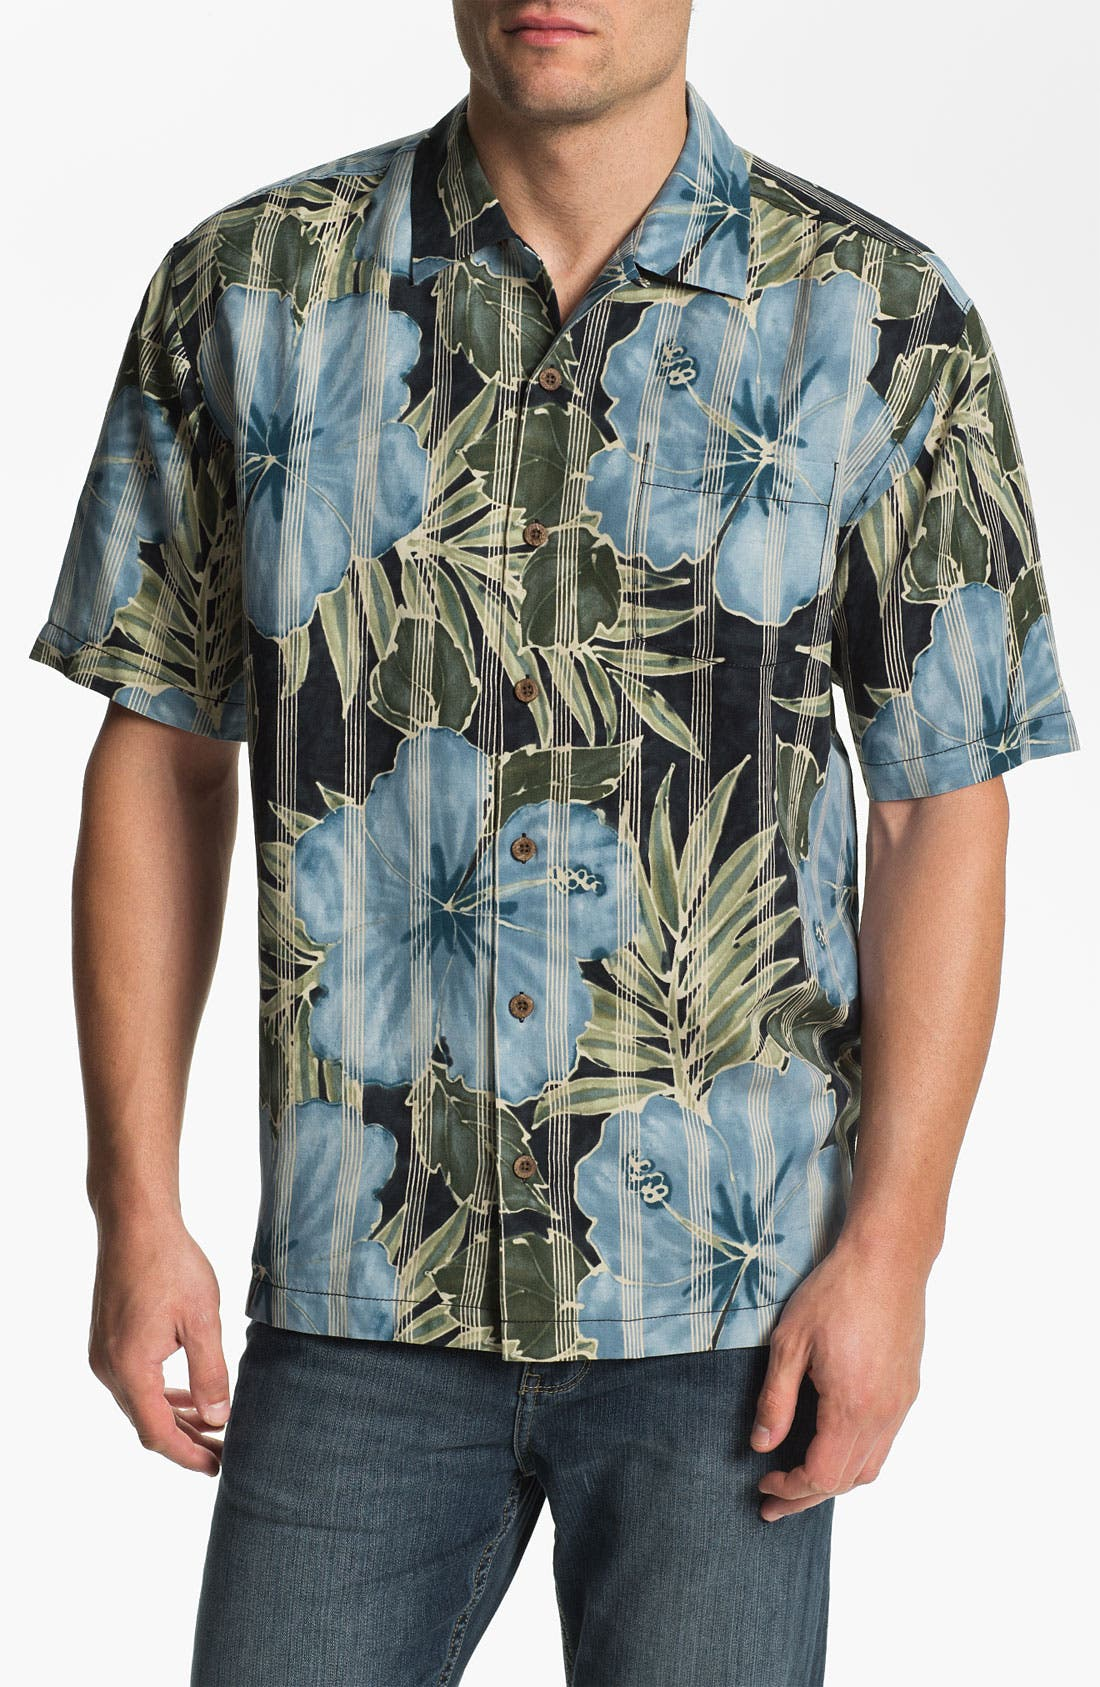 Alternate Image 1 Selected - Tommy Bahama 'Garden of Hope Courage' Linen & Silk Campshirt